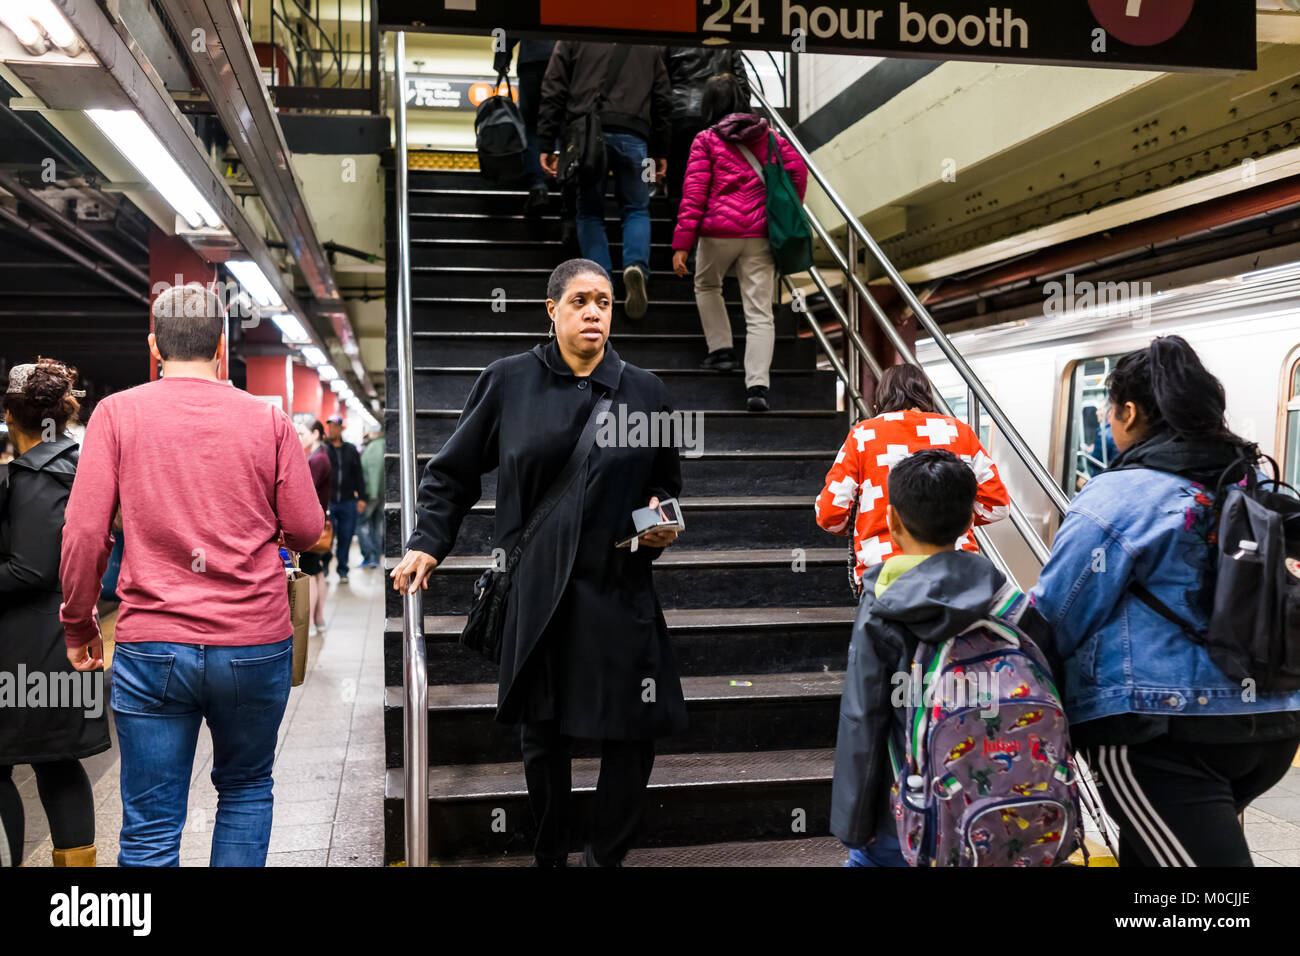 New York City, USA - October 27, 2017: People in underground platform transit in NYC Subway Station after work on - Stock Image